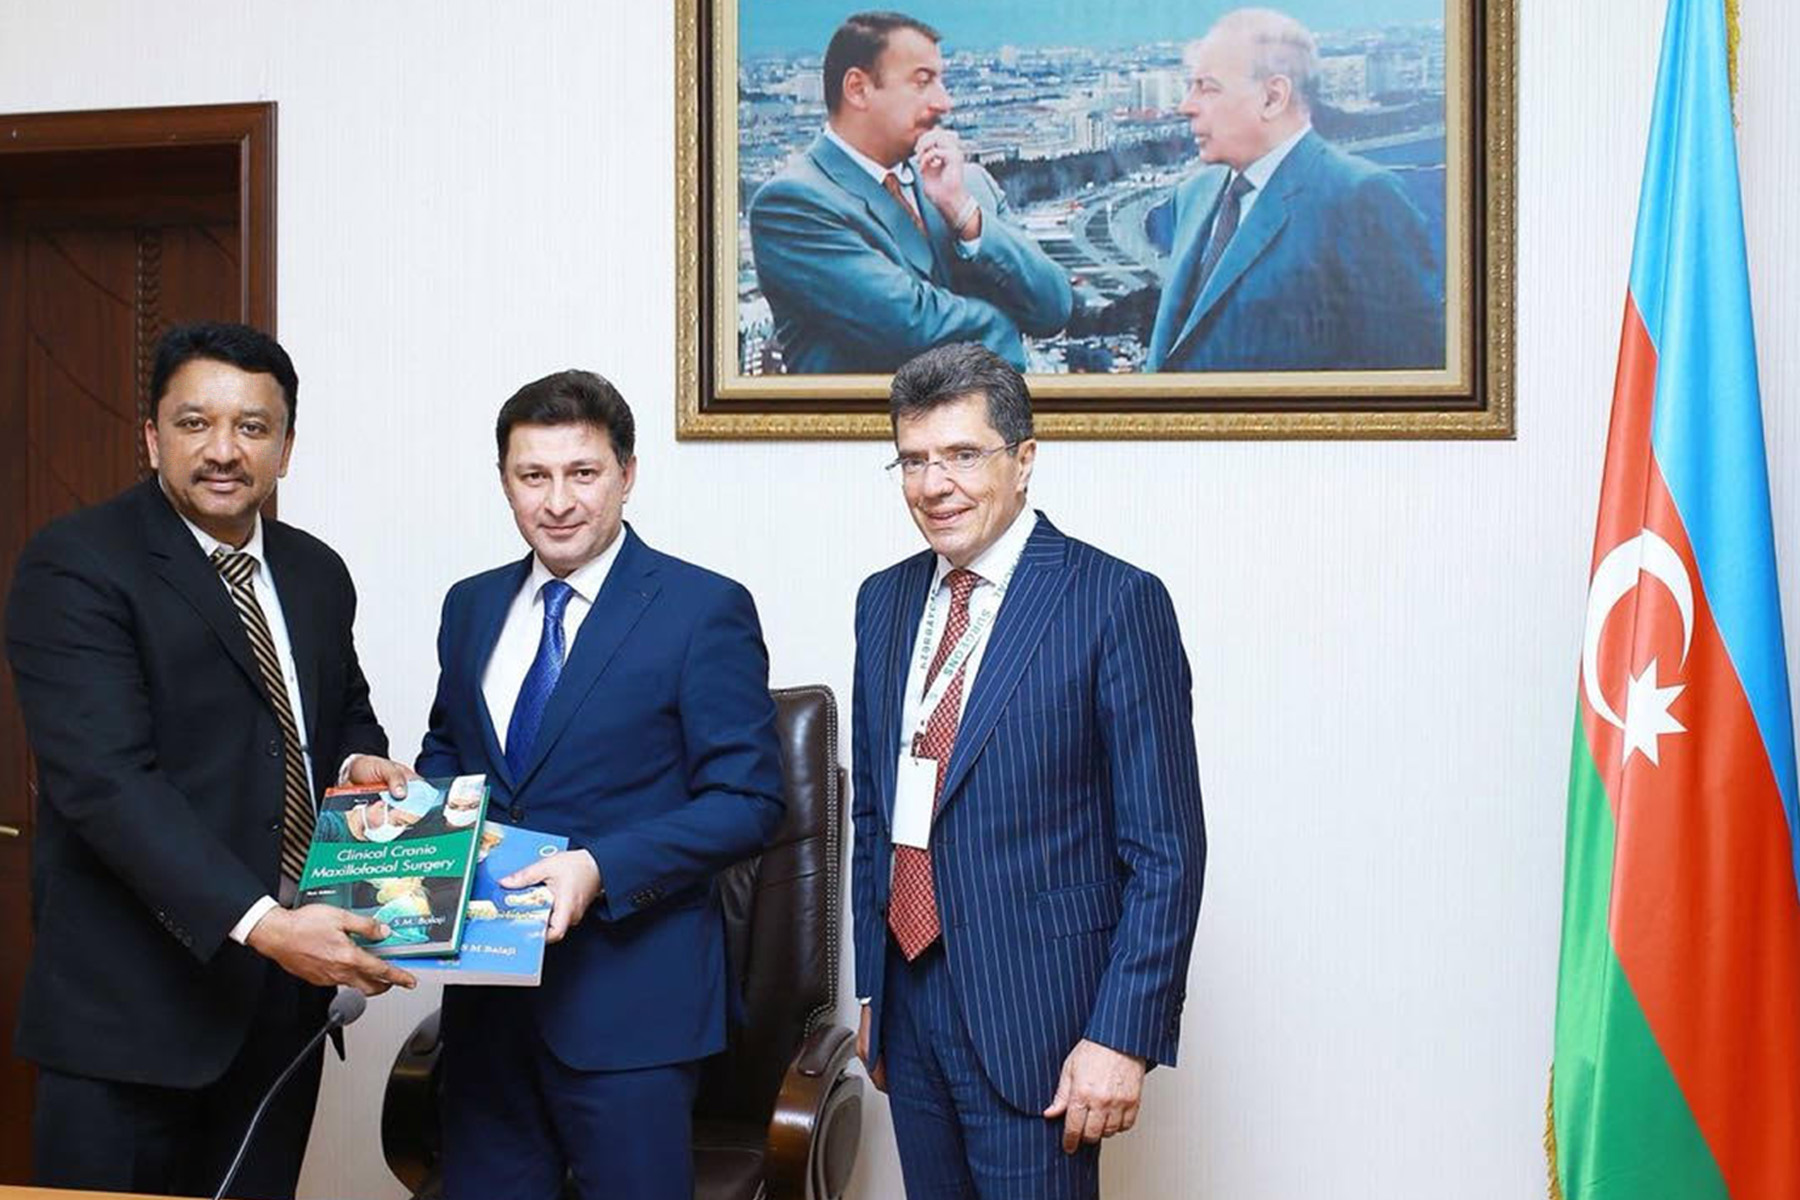 – Dr SM Balaji presenting the Rector, His Excellency Dr Garay Chingiz Garaybayli with a copy of his Clinical Craniomaxillofacial Surgery book